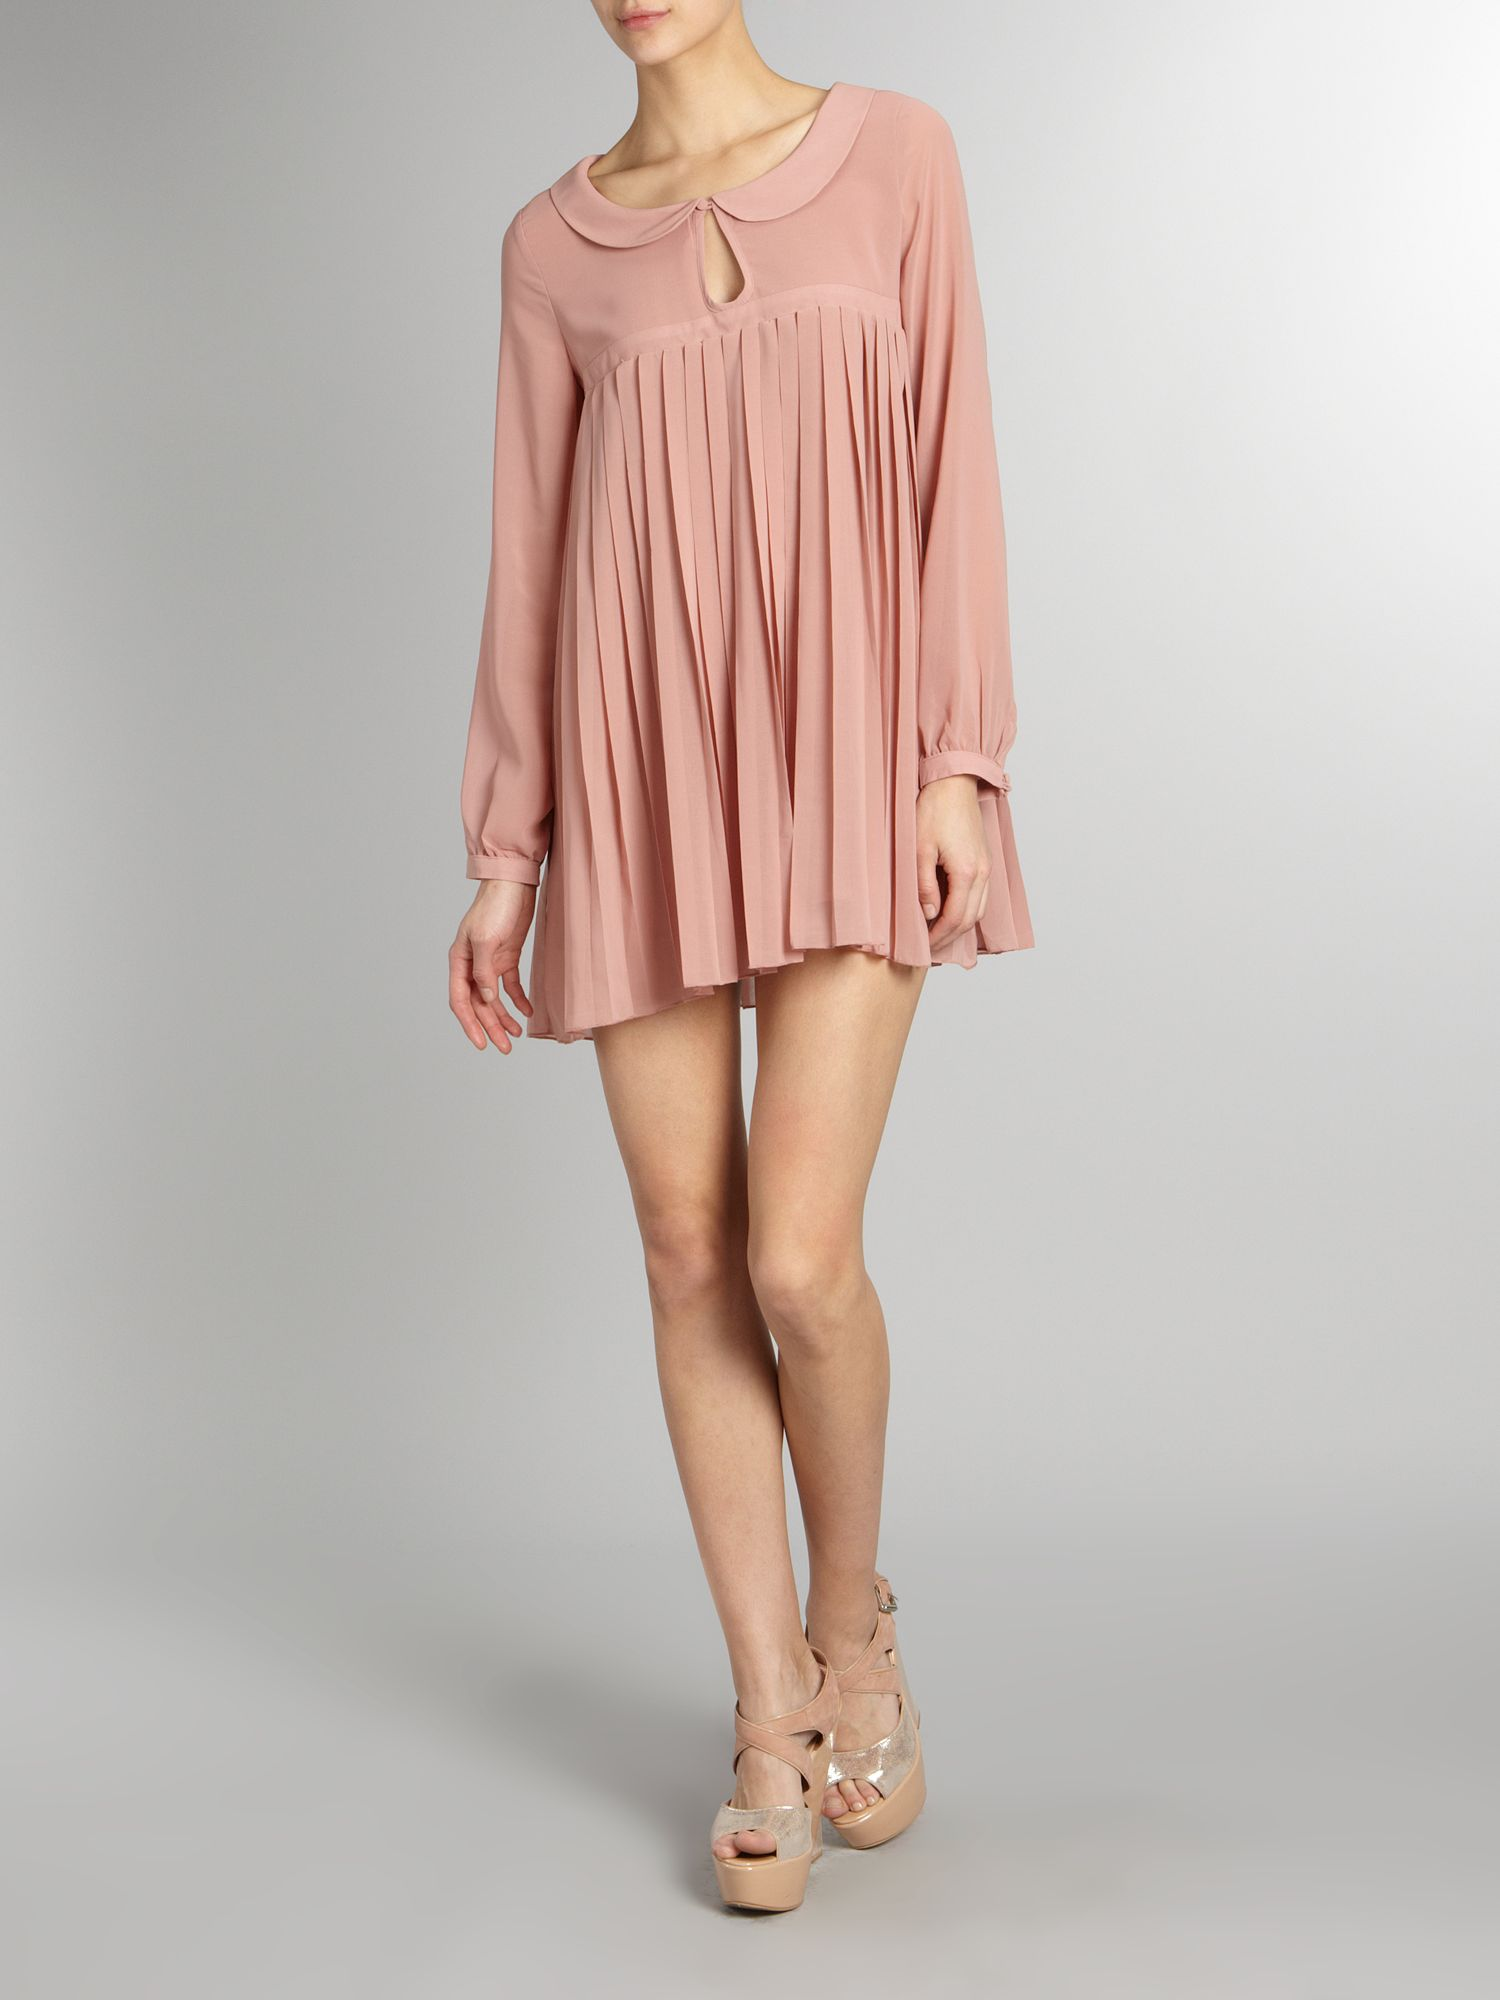 Tfnc london Pleated Dress in Pink  Lyst